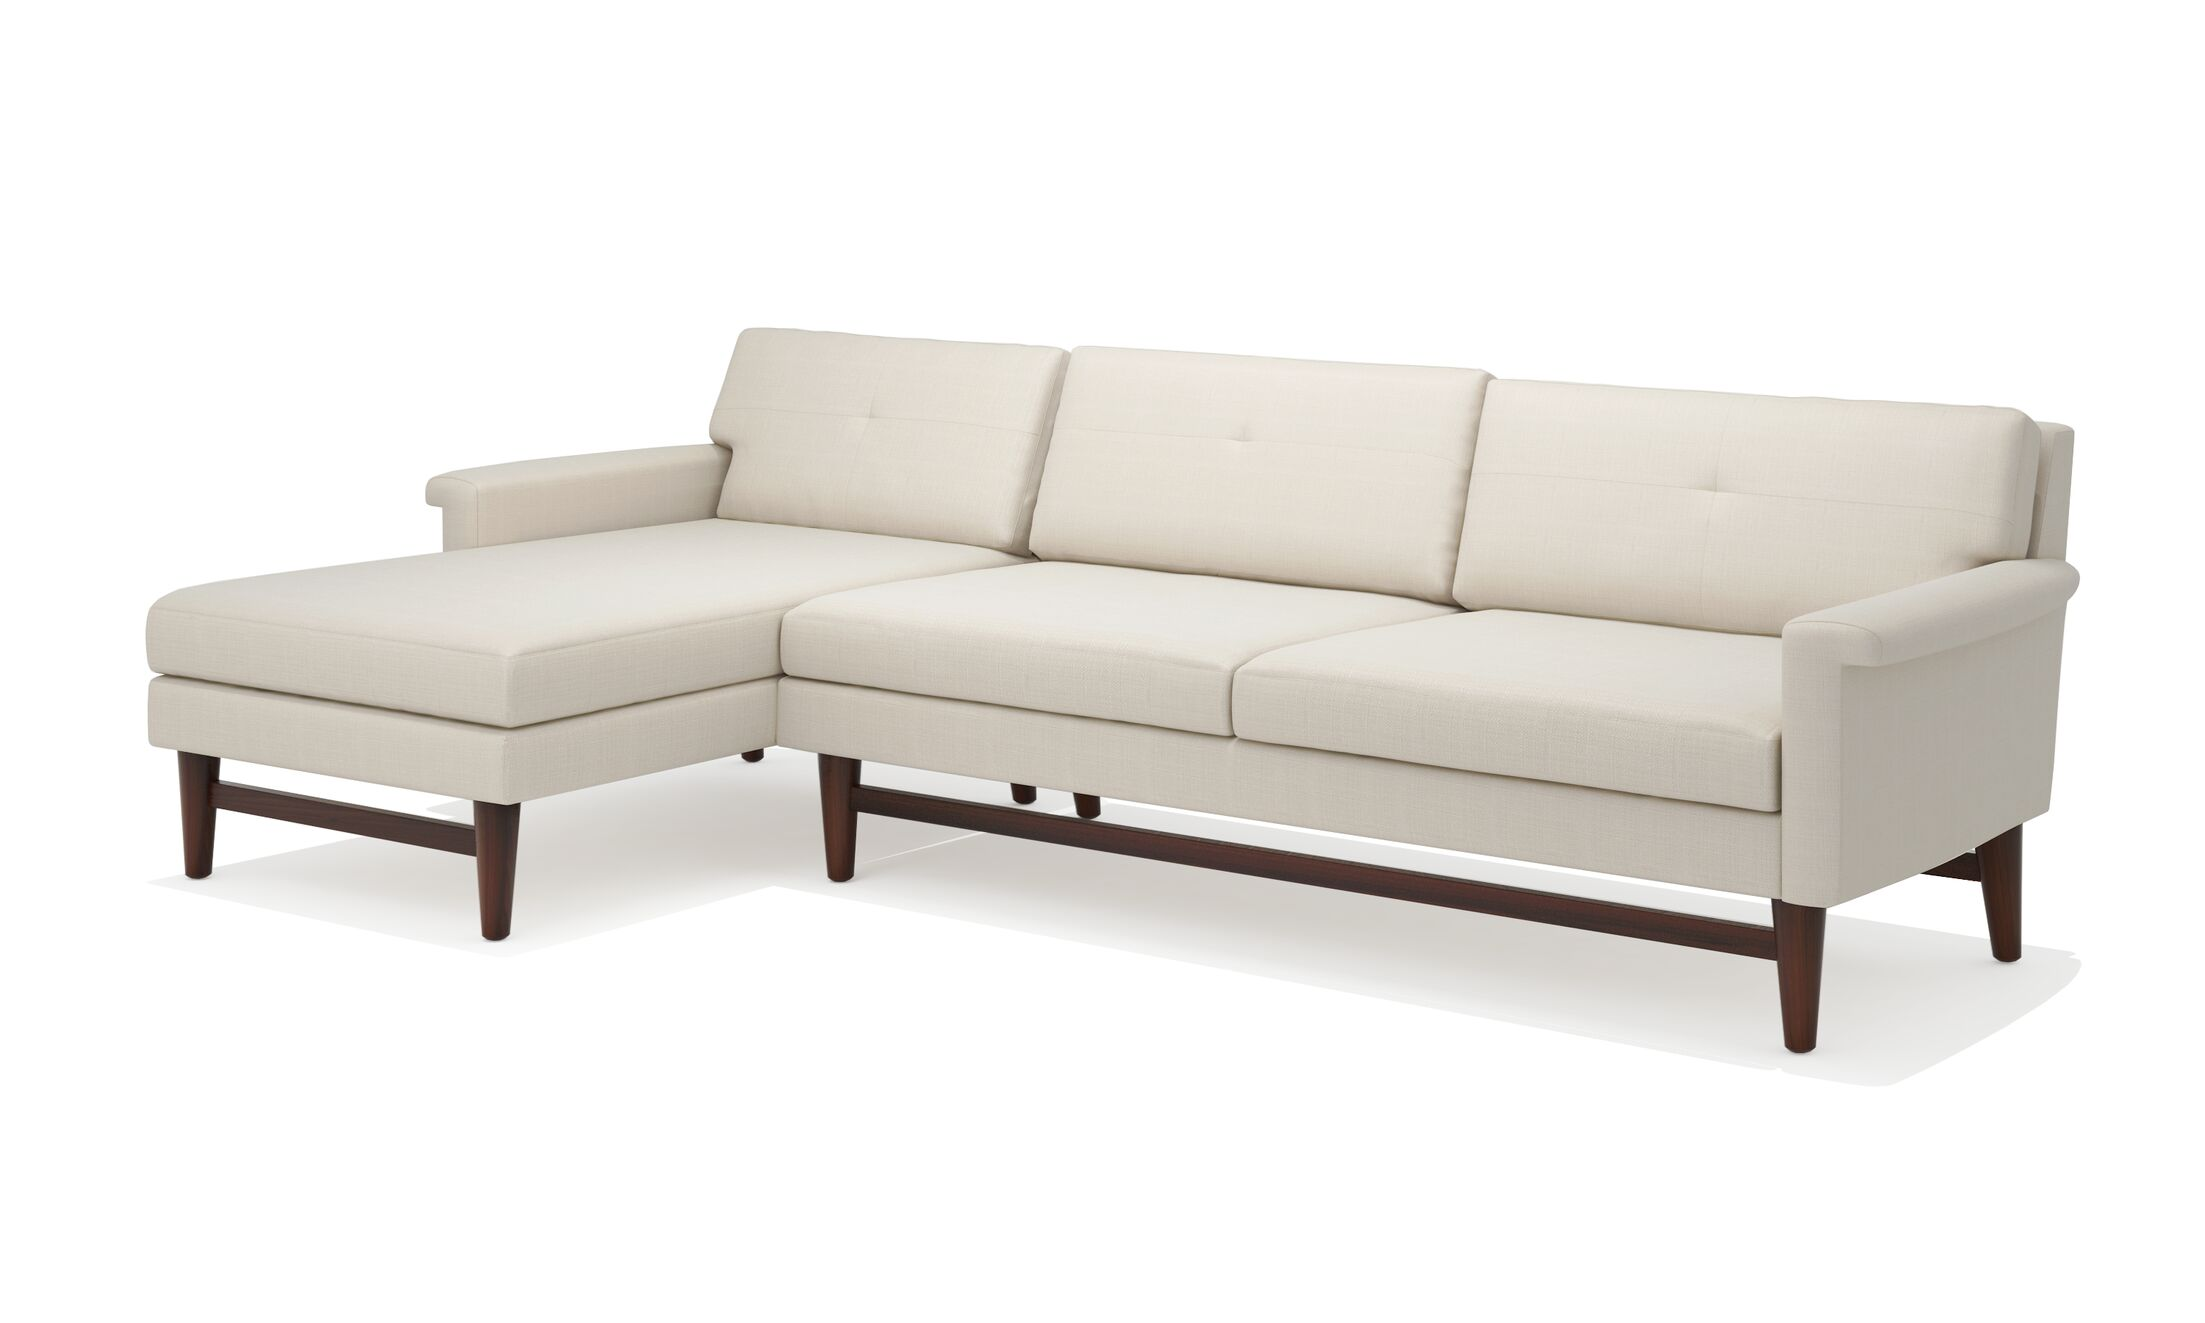 Diggity Sofa with Chaise Body Fabric: Klein Dolphin, Leg Color: Honey, Sectional Orientation: Right Hand Facing